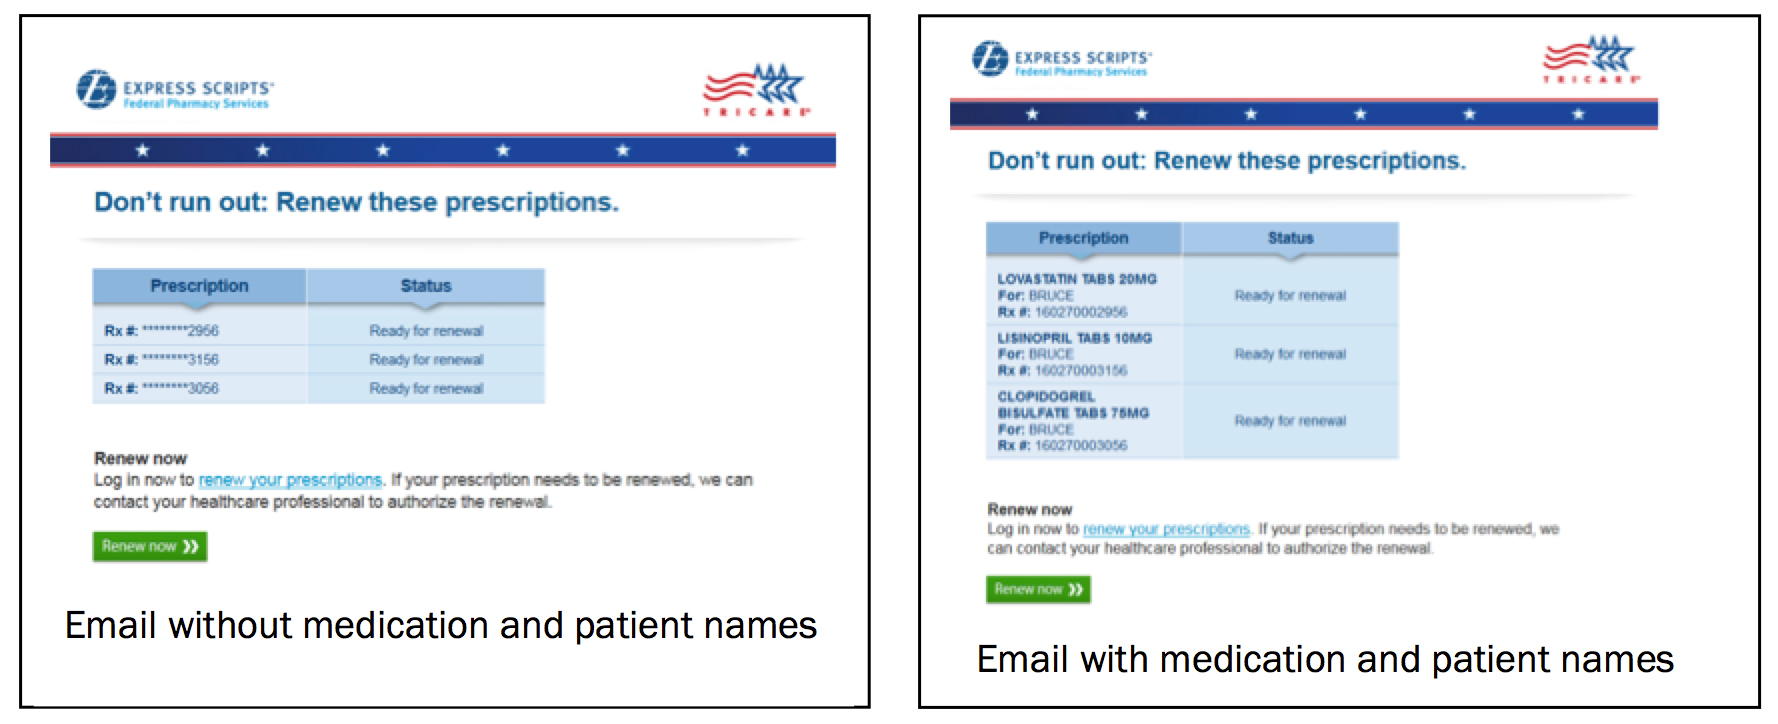 express scripts tricare for life phone number